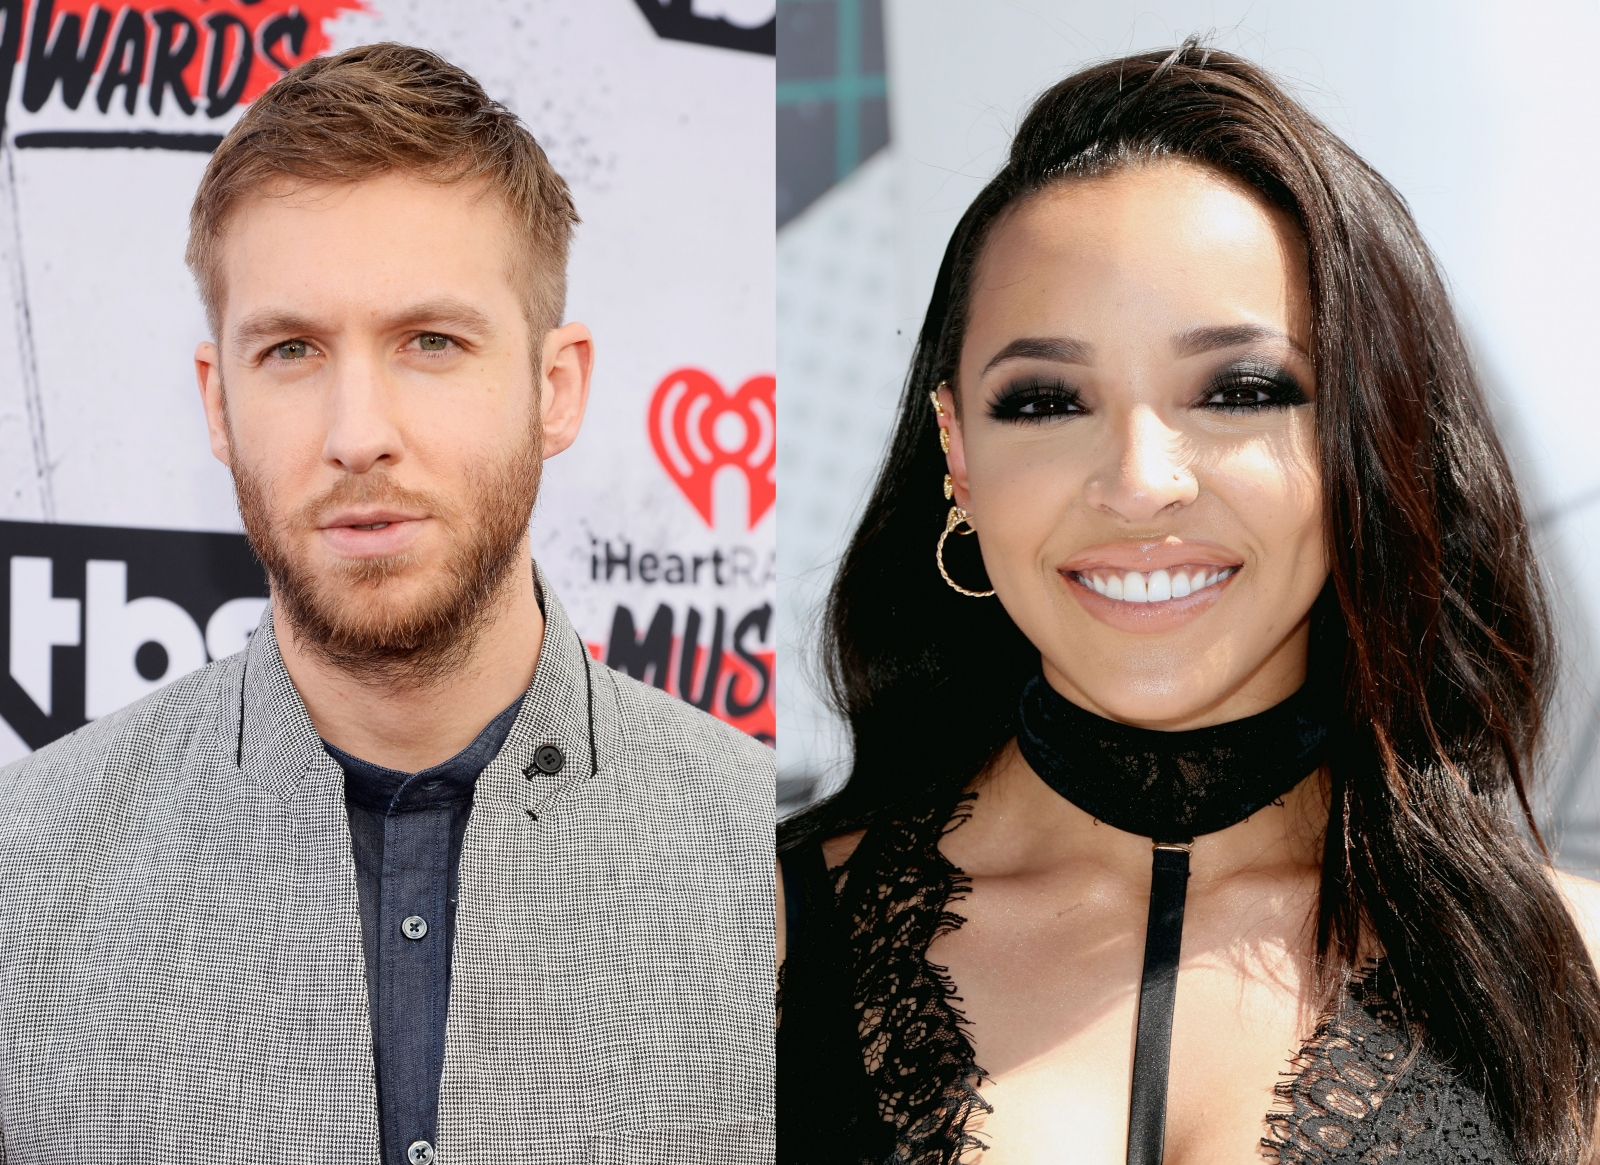 Calvin Harris and Tinashe